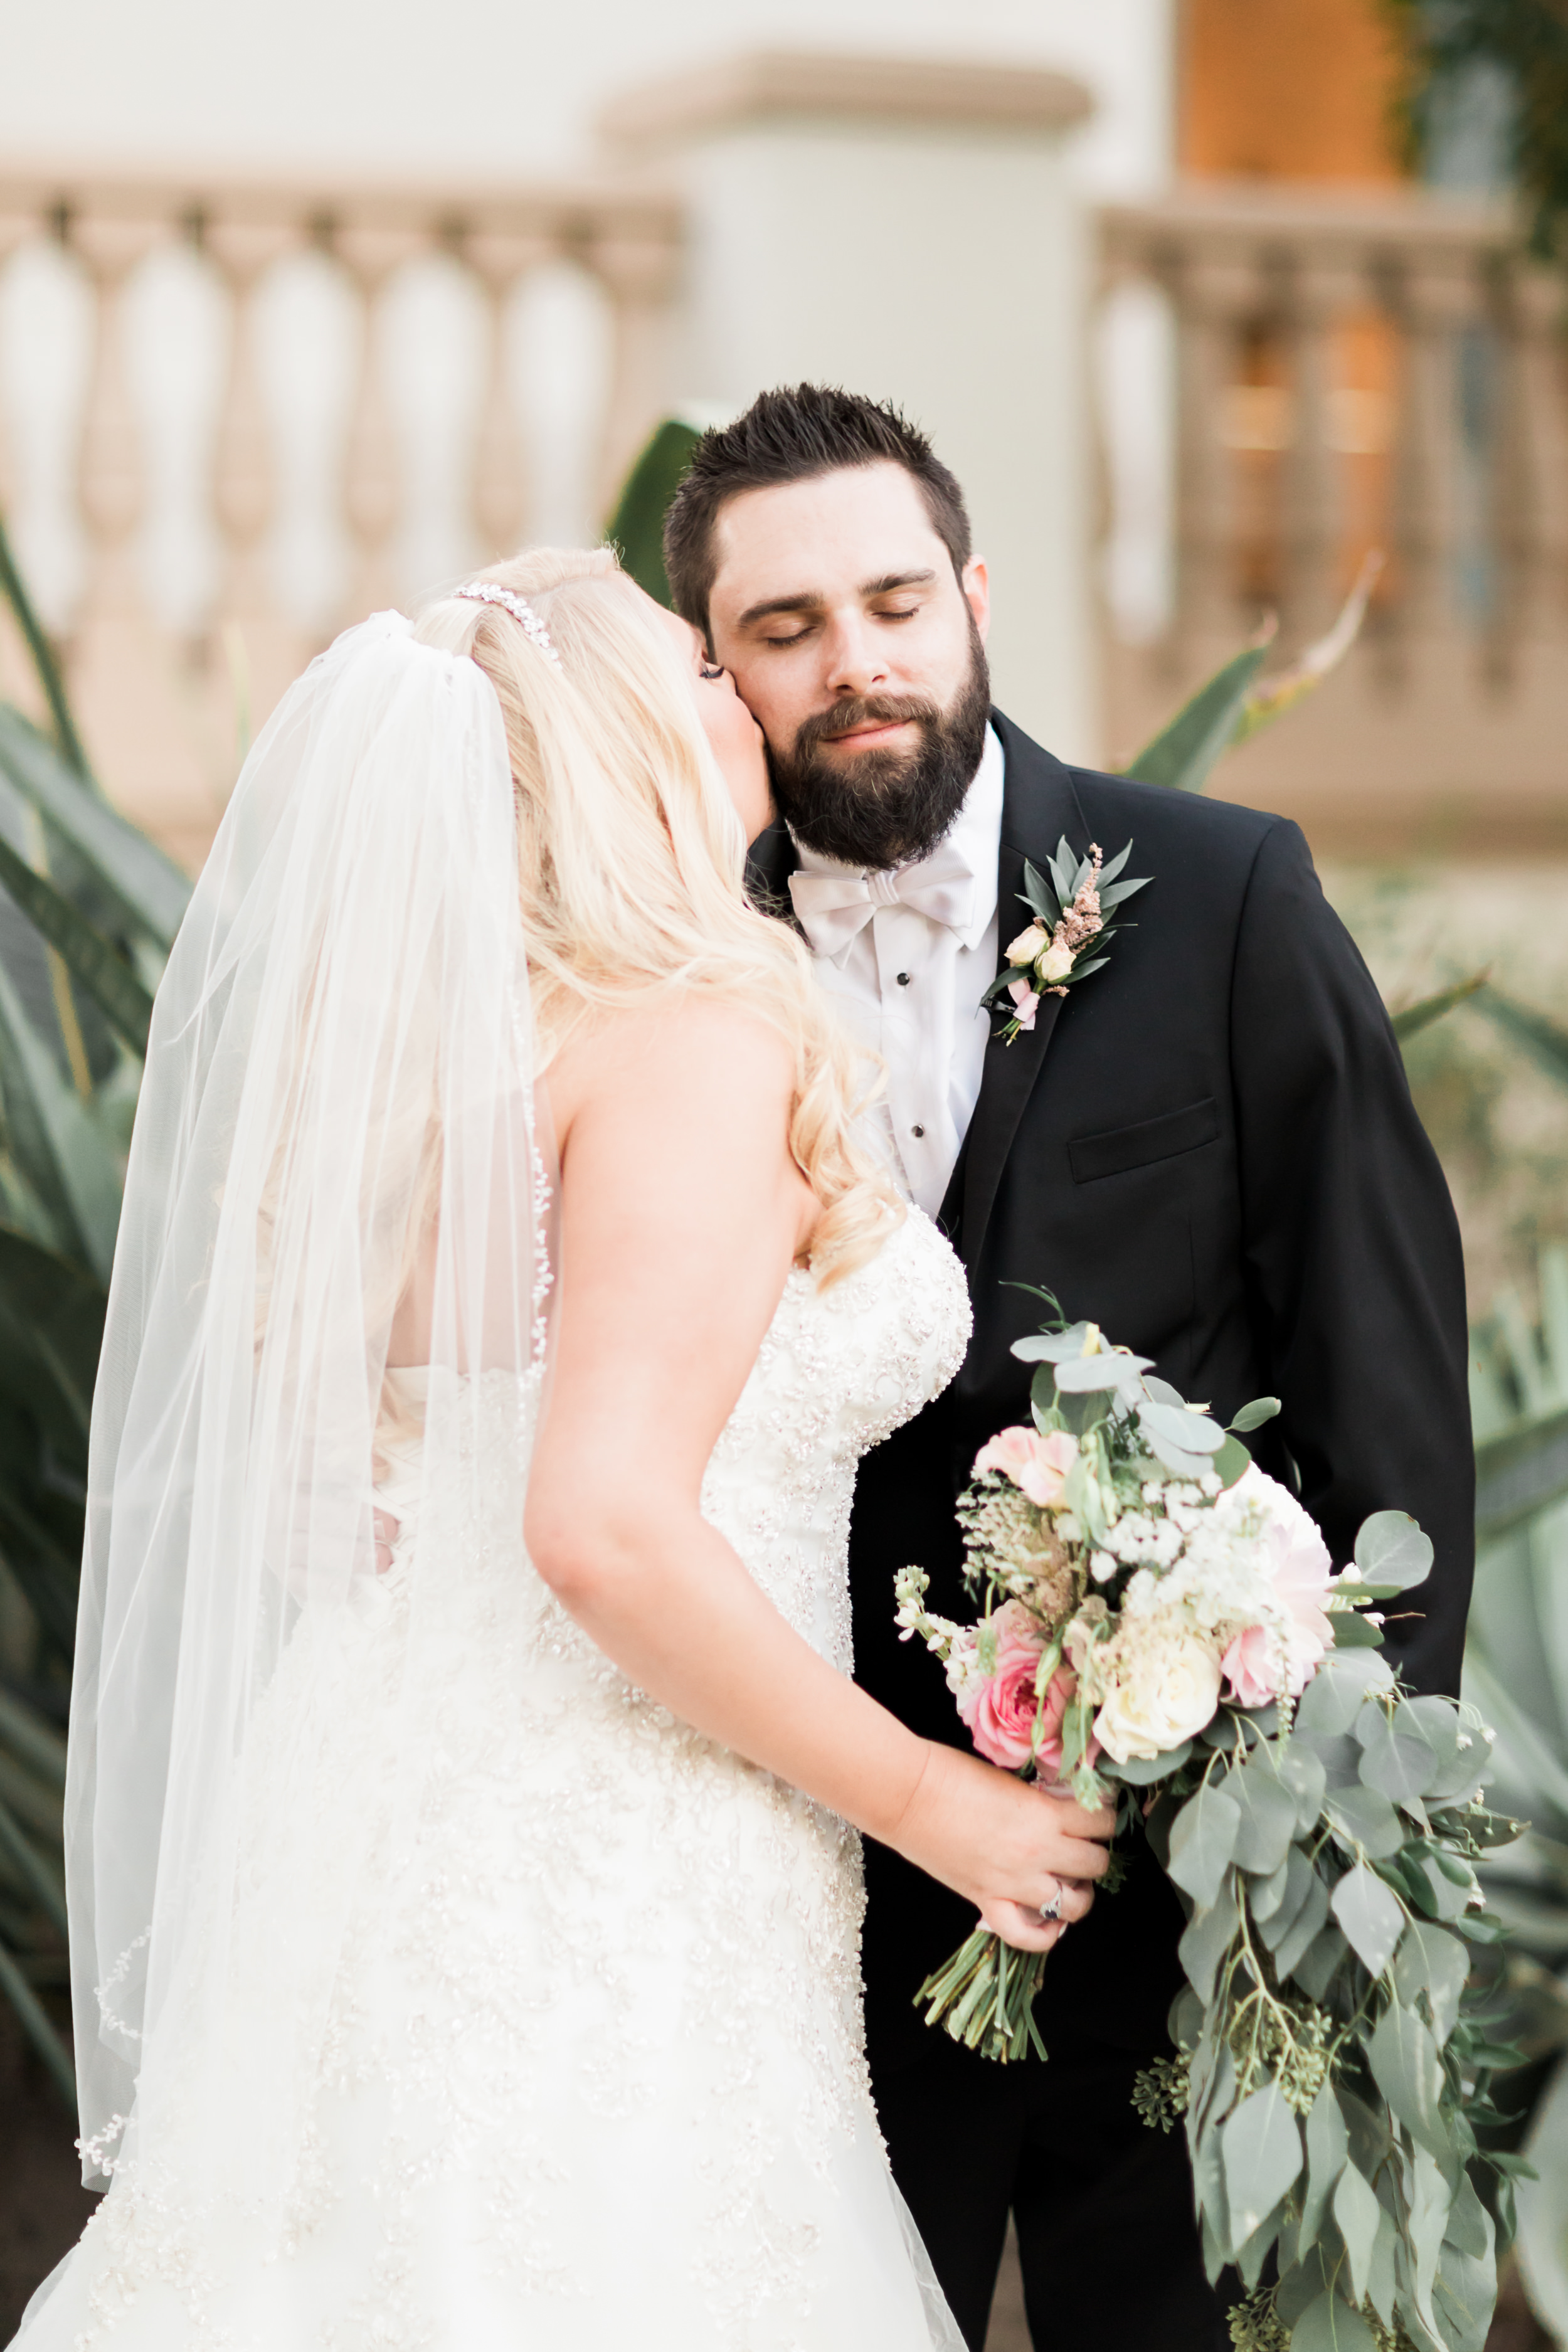 Bride and groom had a stunning navy and gold fall wedding at Spanish Hills in Camarillo, CA. The white florals and greenery were the perfect touch throughout the SoCal venue, reception decor and centerpieces. This fall wedding has affordable wedding DIYs ideas that look more luxe than they are. This is a must save! Planning:@janealexandraevents | Photography: @KJacksonPhoto | Florals: @velvetblooms #JAE #janealexandraevents #camarilloweddingvenue #weddingplanning #camarillowedding